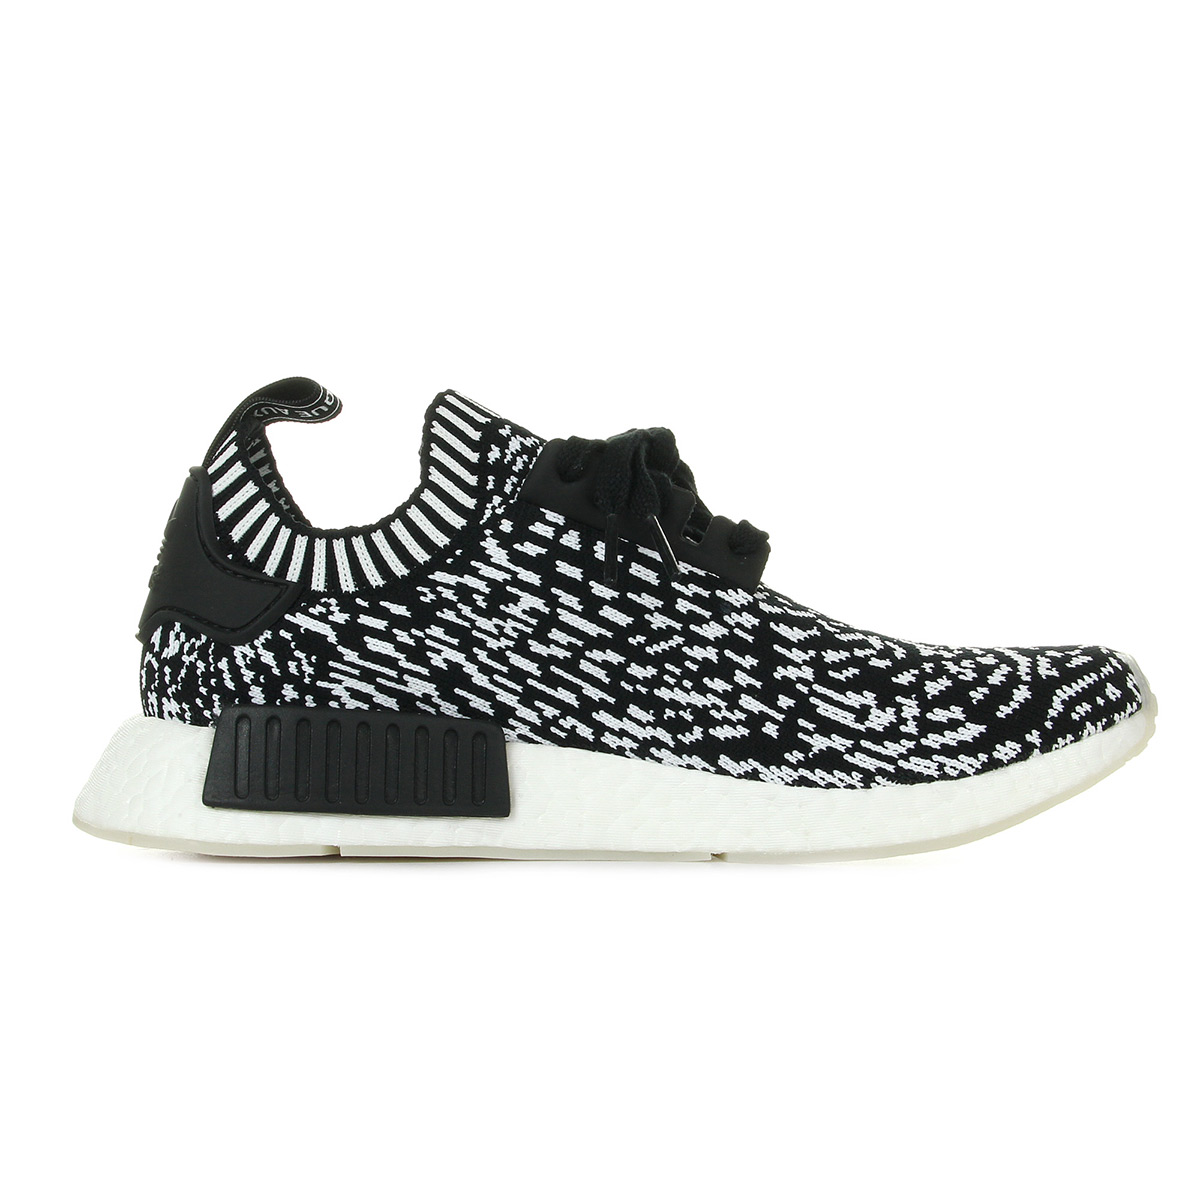 adidas Nmd R1 Pk BY3013, Baskets mode